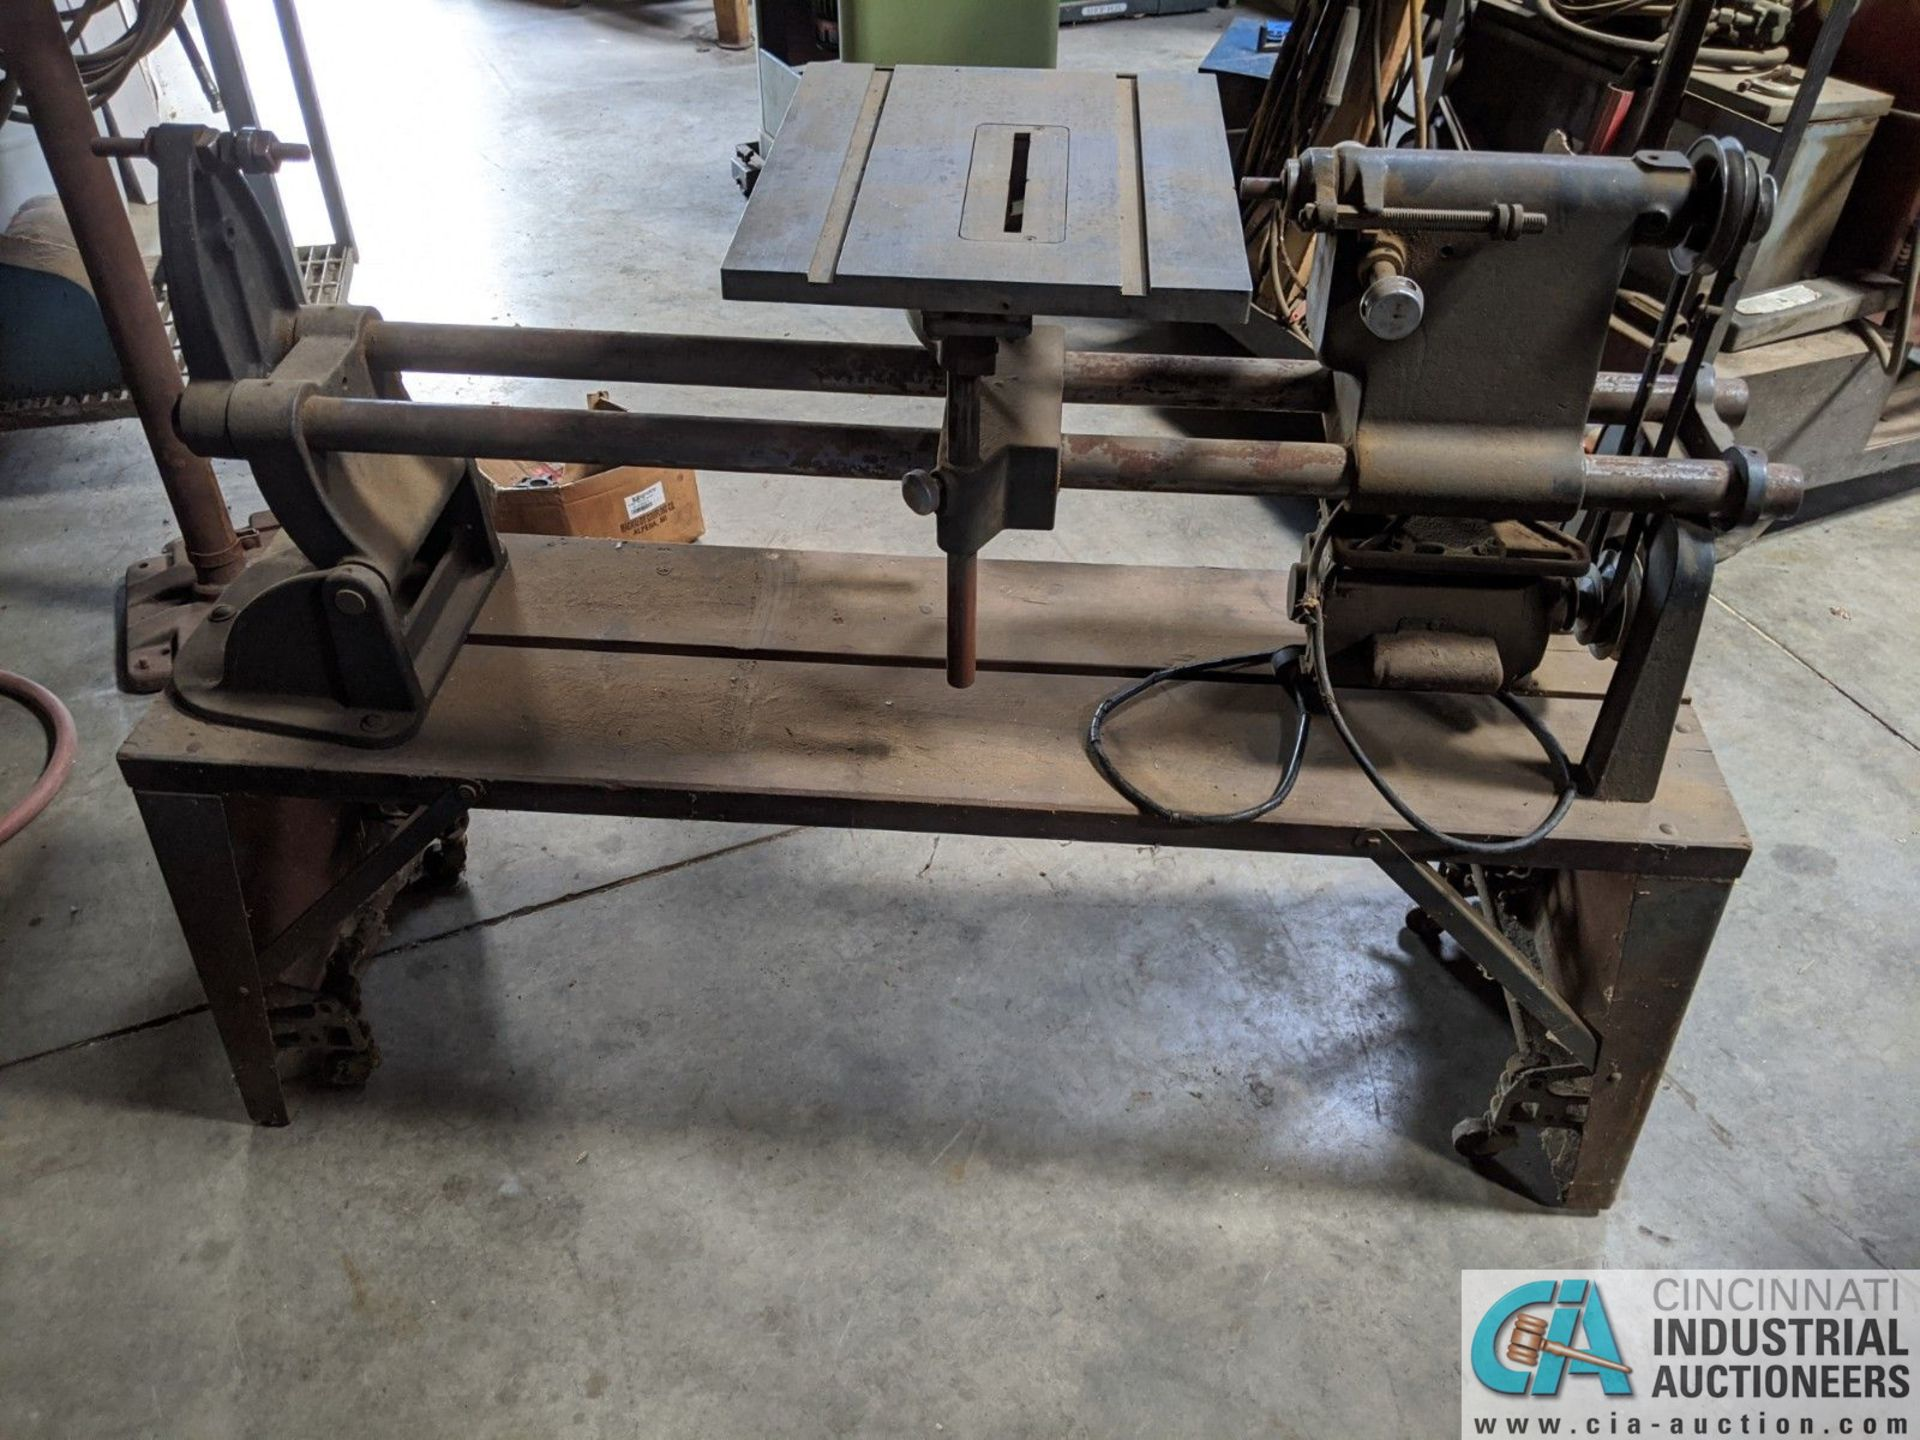 """15"""" SHOP SMITH BELT TYPE WOODWORKING LATHE; S/N E546548, MOUNTED ON PORTABLE BASE (8635 East Ave., - Image 2 of 5"""